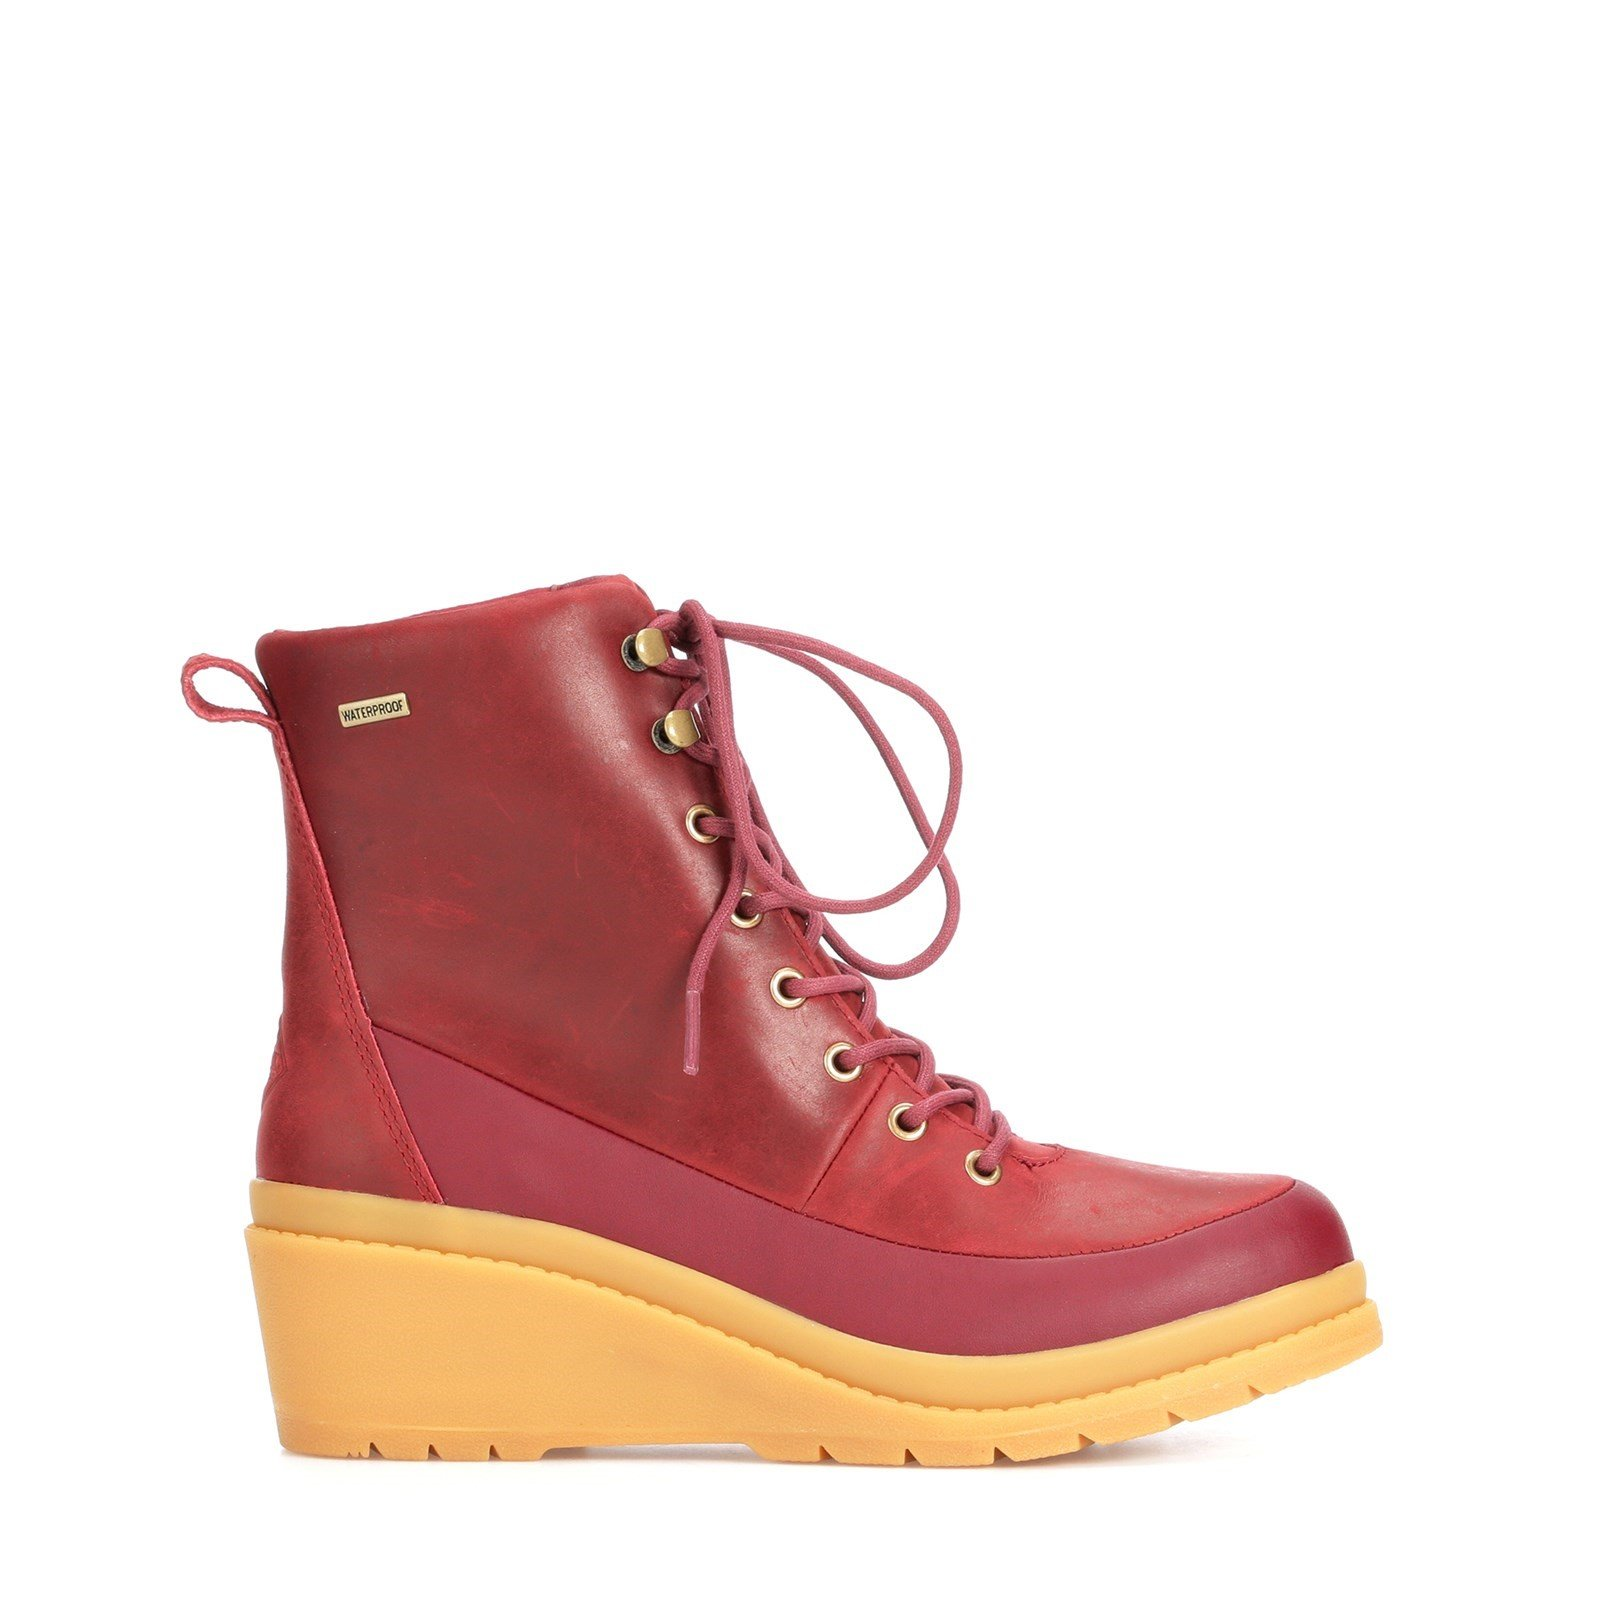 Muck Boots Women's Liberty Leather Ankle Boots Various Colours 31813 - Cordovan 7